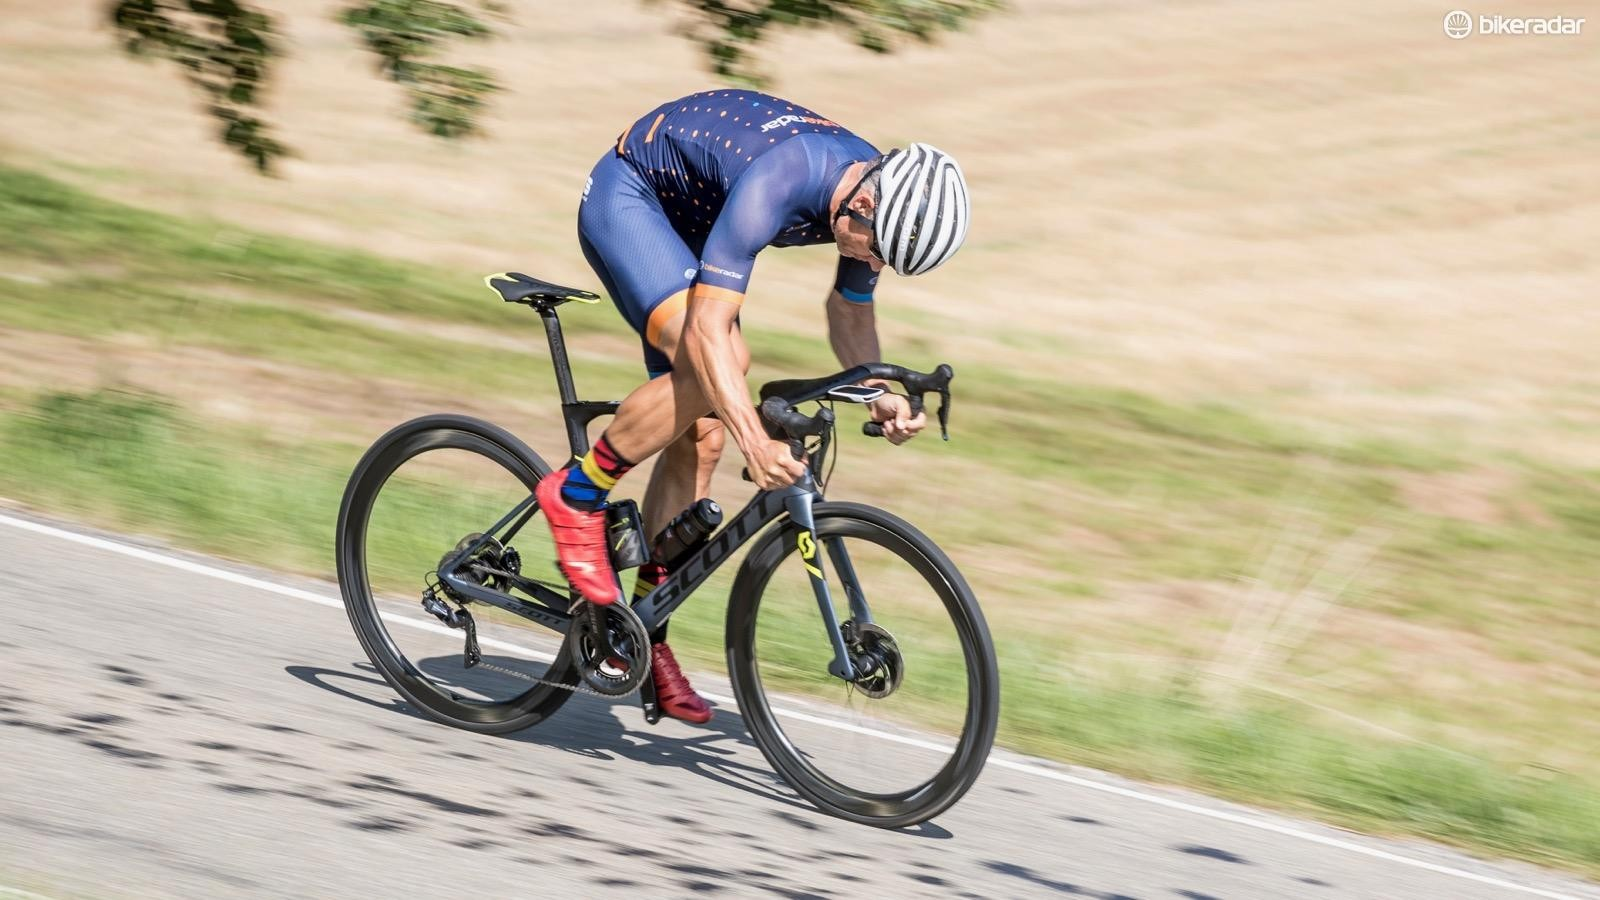 With fast and plush tires, snappy handling and one-finger braking, the Foil Premium Disc is a delight to rally on (and even off) the paved road